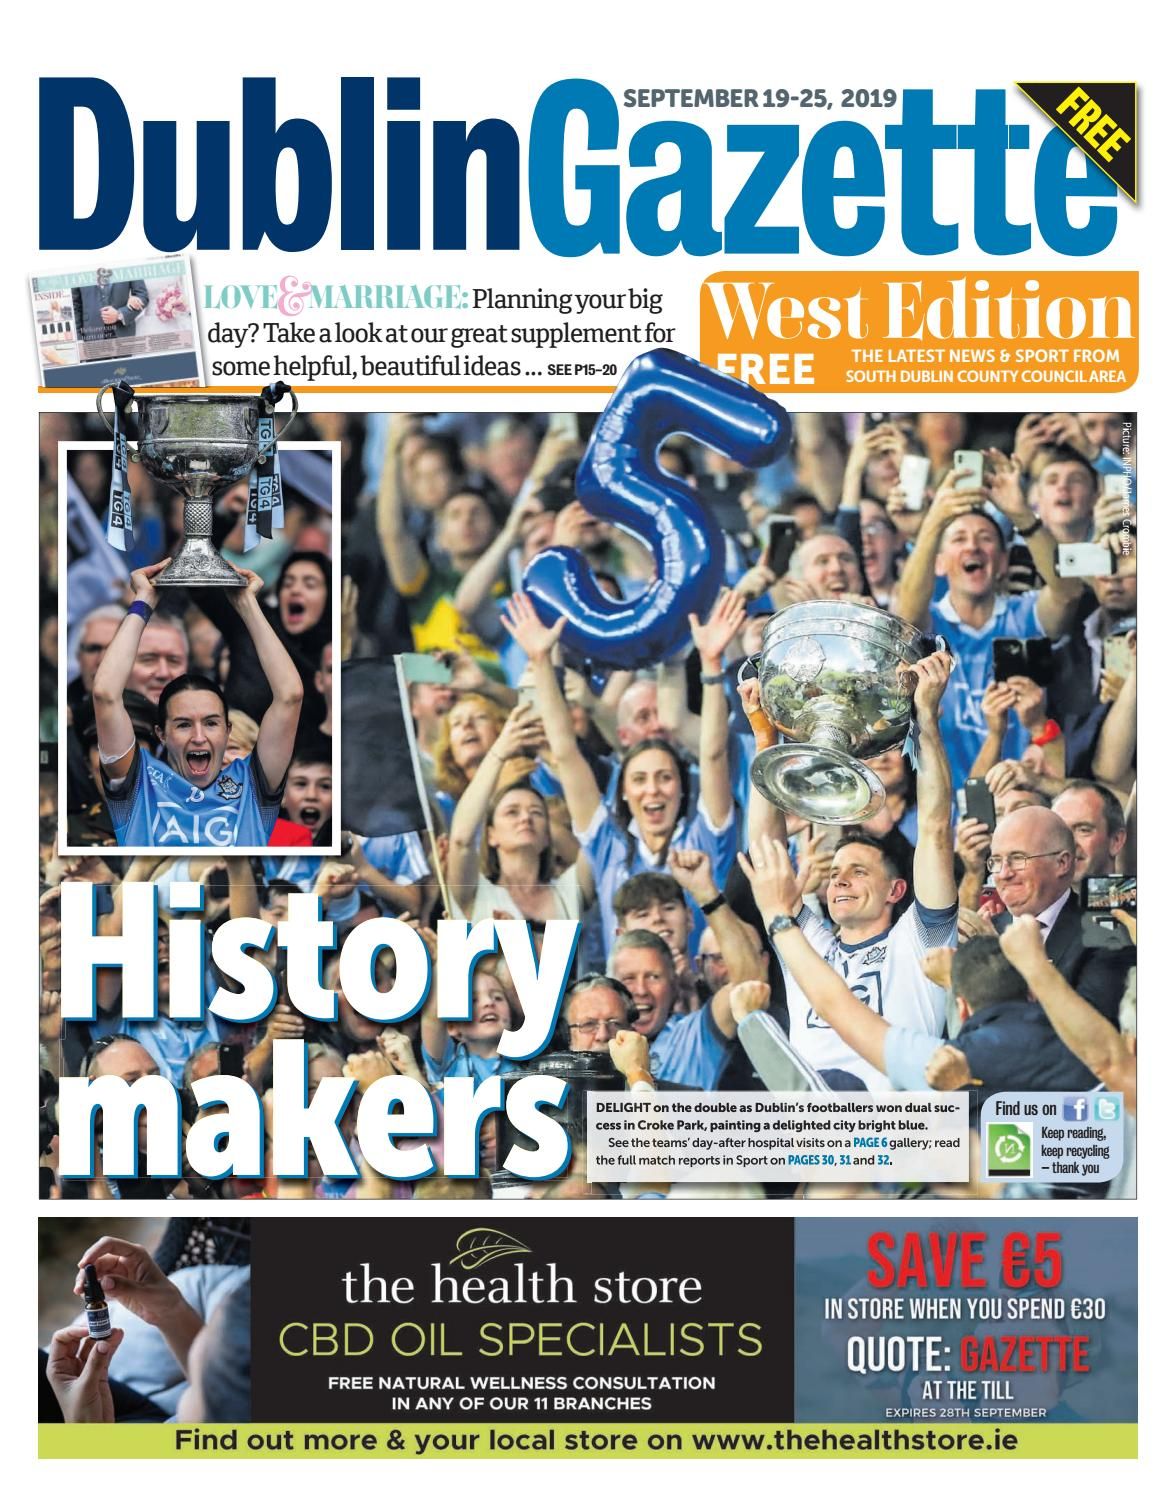 Dublin Gazette West Edition By Dublin Gazette Issuu